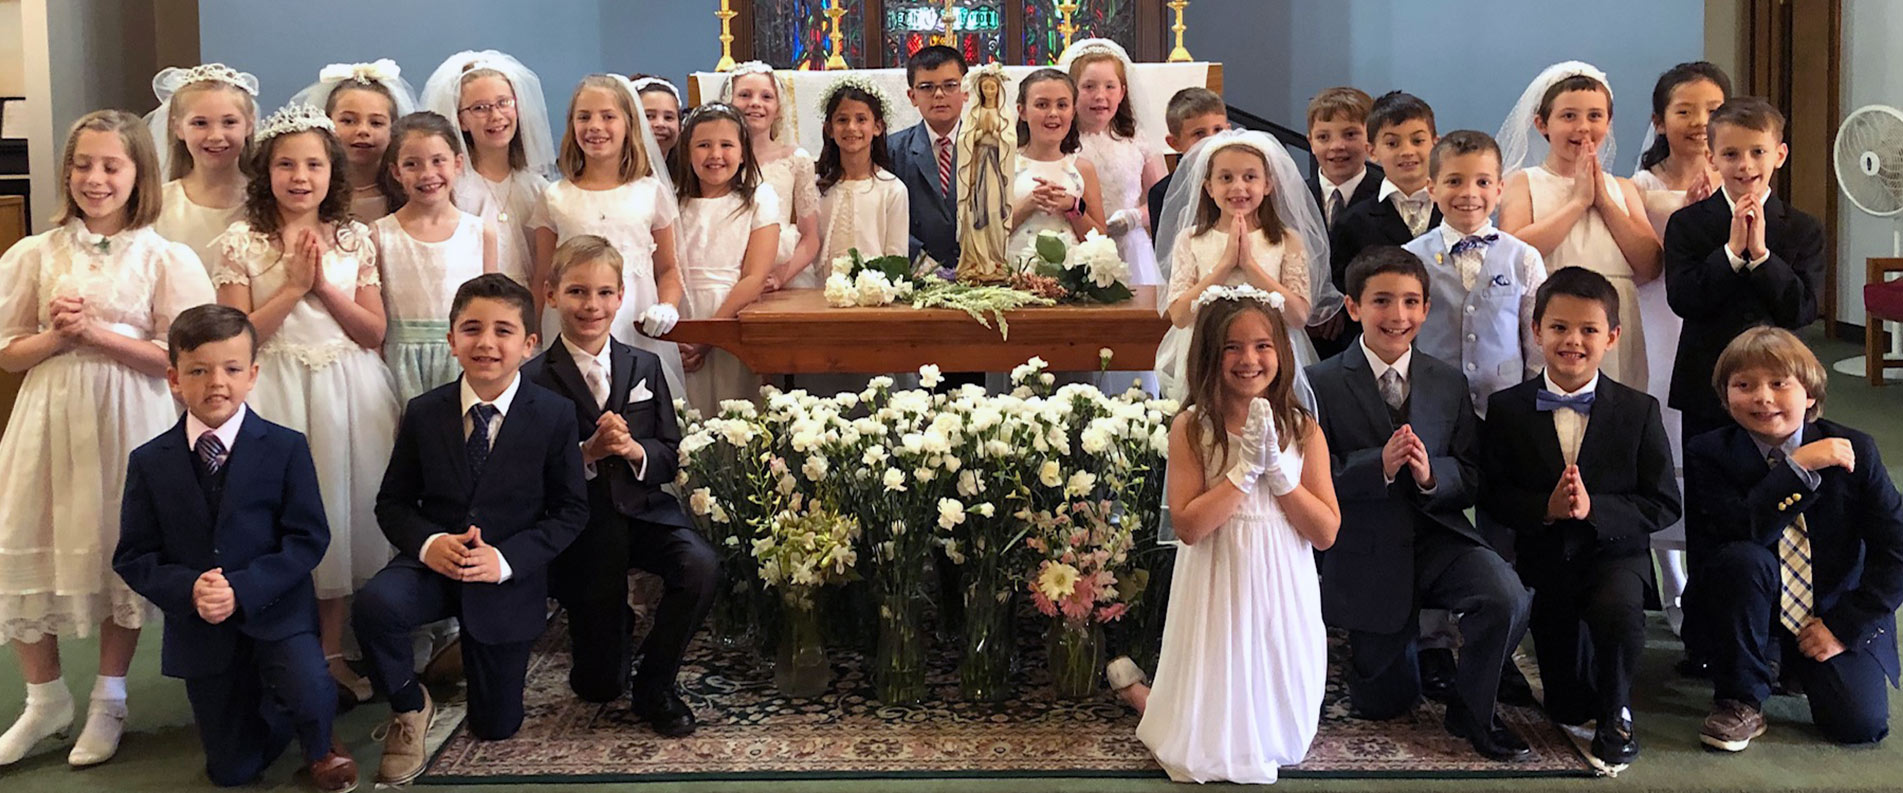 Second Graders in First Communion clothing posing after May Crowning